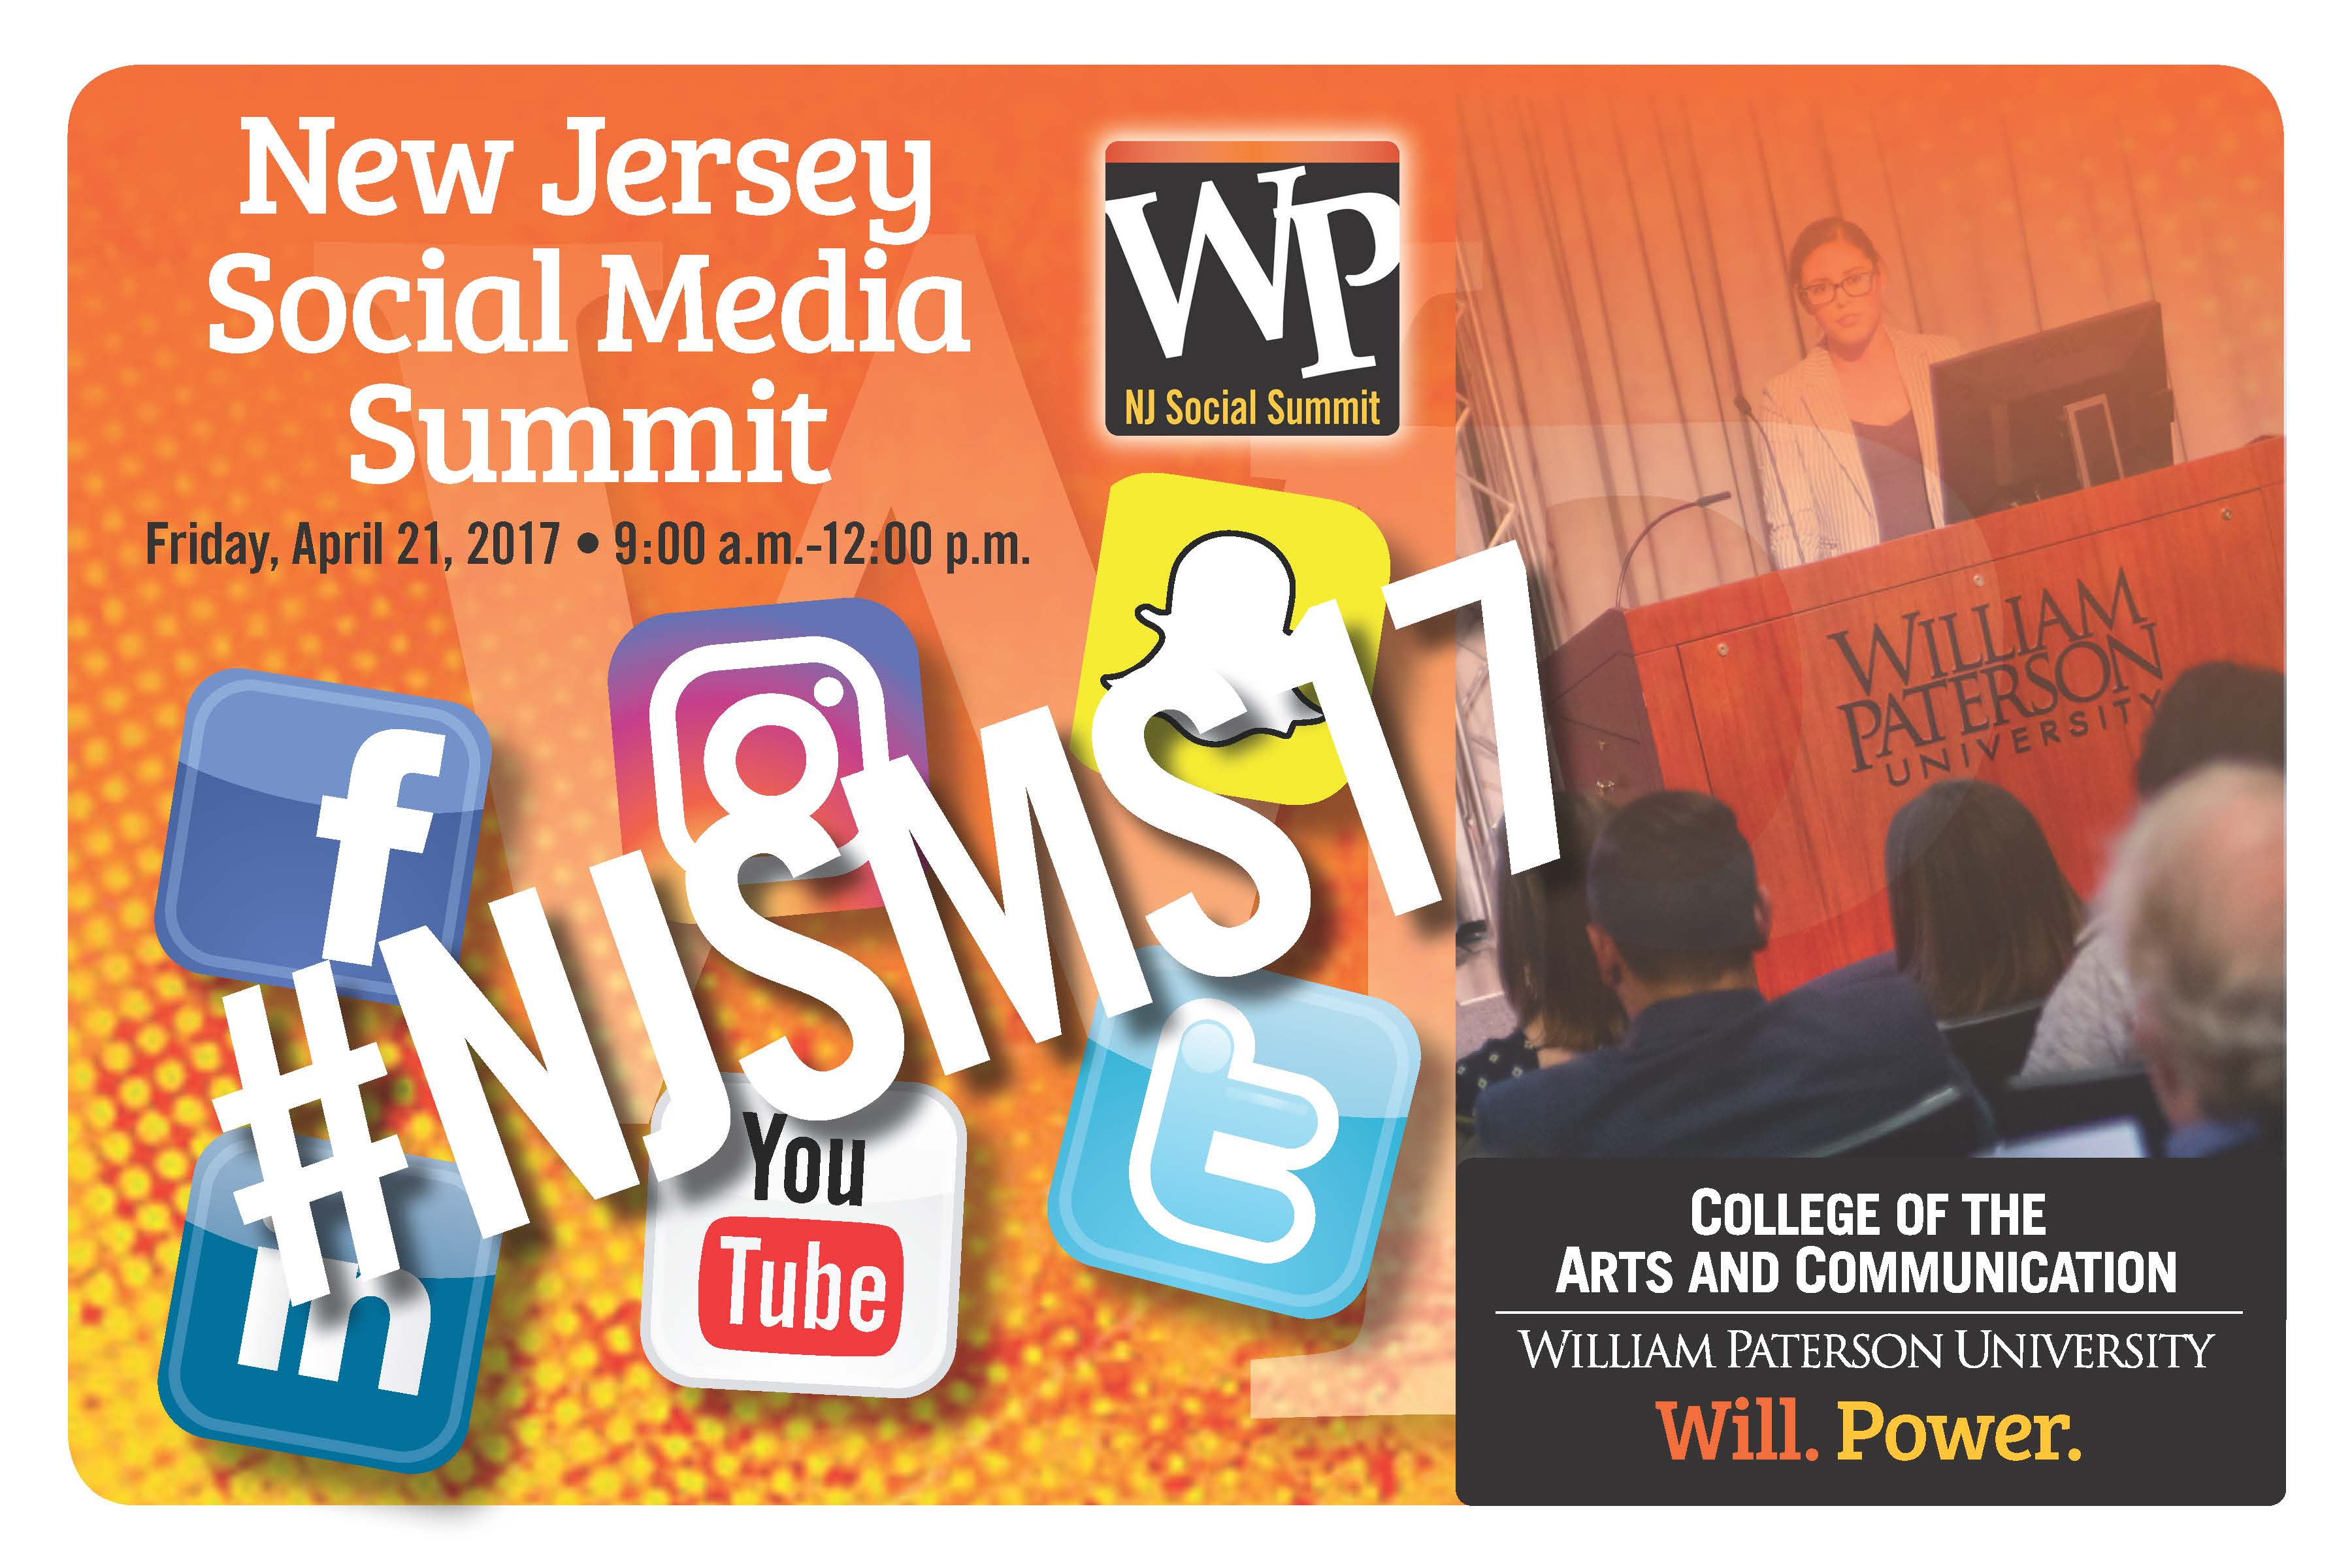 NJ Social Media Summit 2017HR_Postcard_Page_1